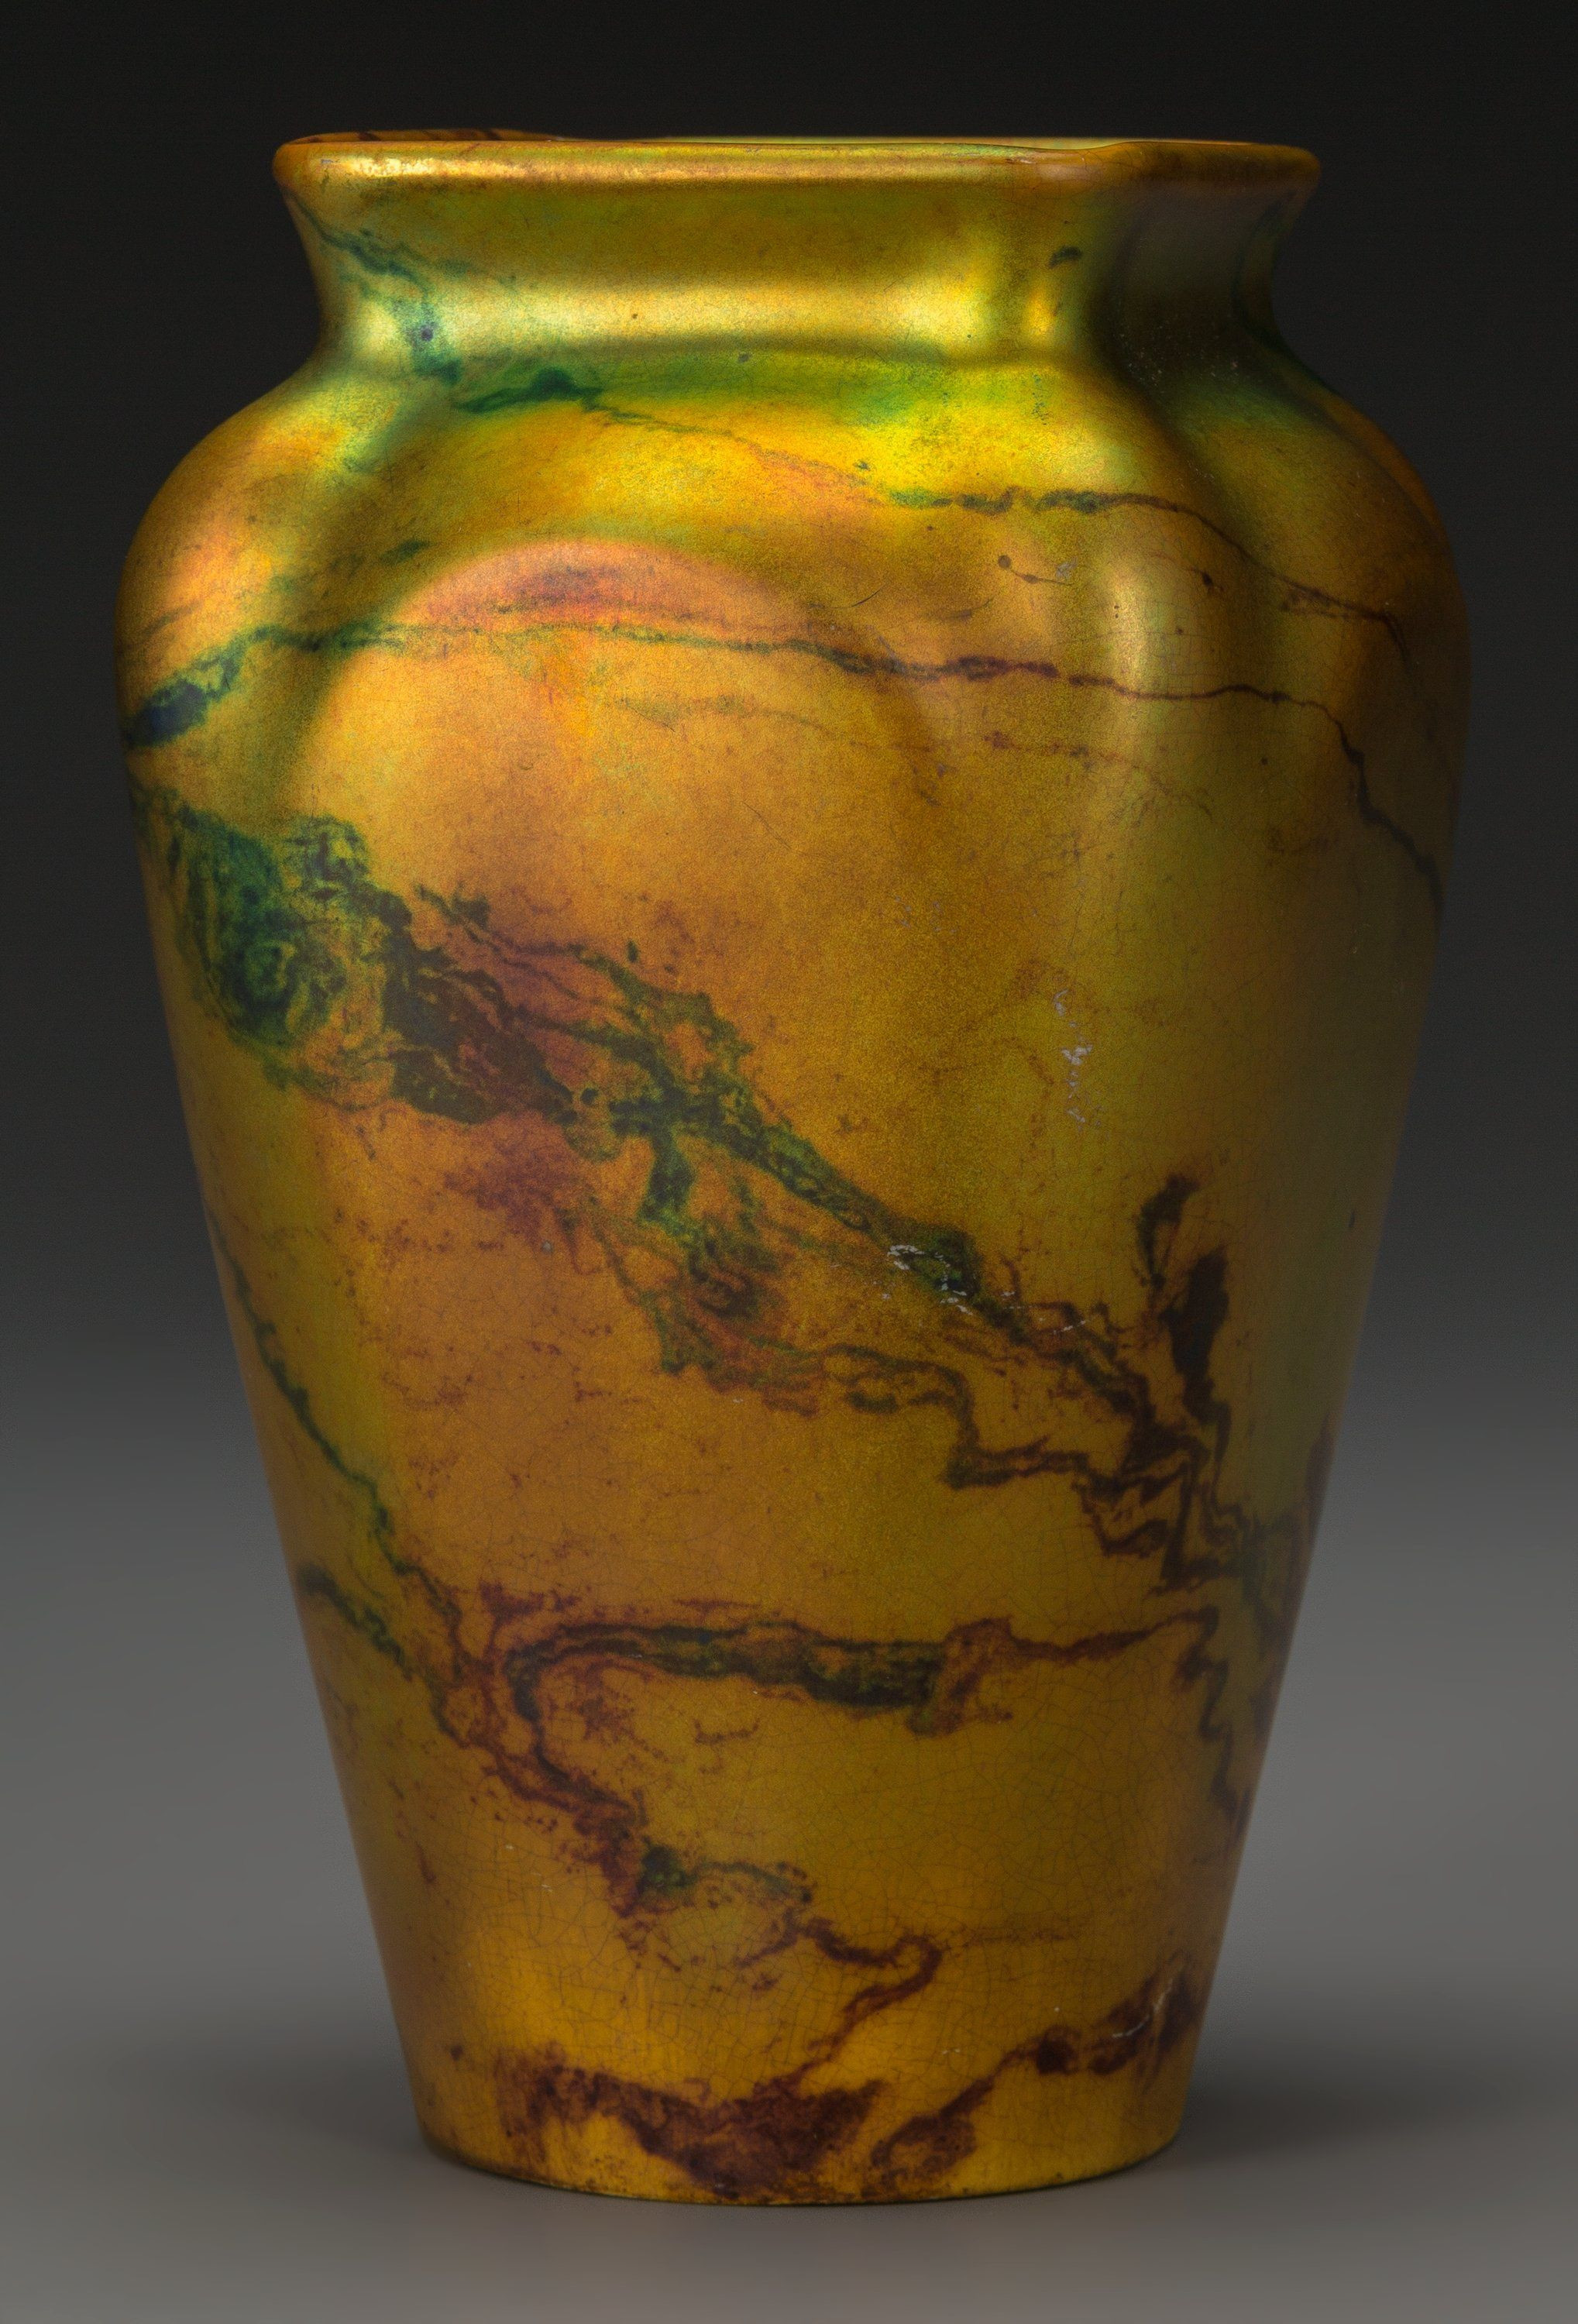 gold ceramic vase of a zsolnay lustre ceramic marbled vasepacs hungary circa 1900 within a zsolnay lustre ceramic marbled vasepacs hungary circa 1900 marks applied five tower mark zsolnay pecs 6014 m 20 7 inches high 17 8 cm